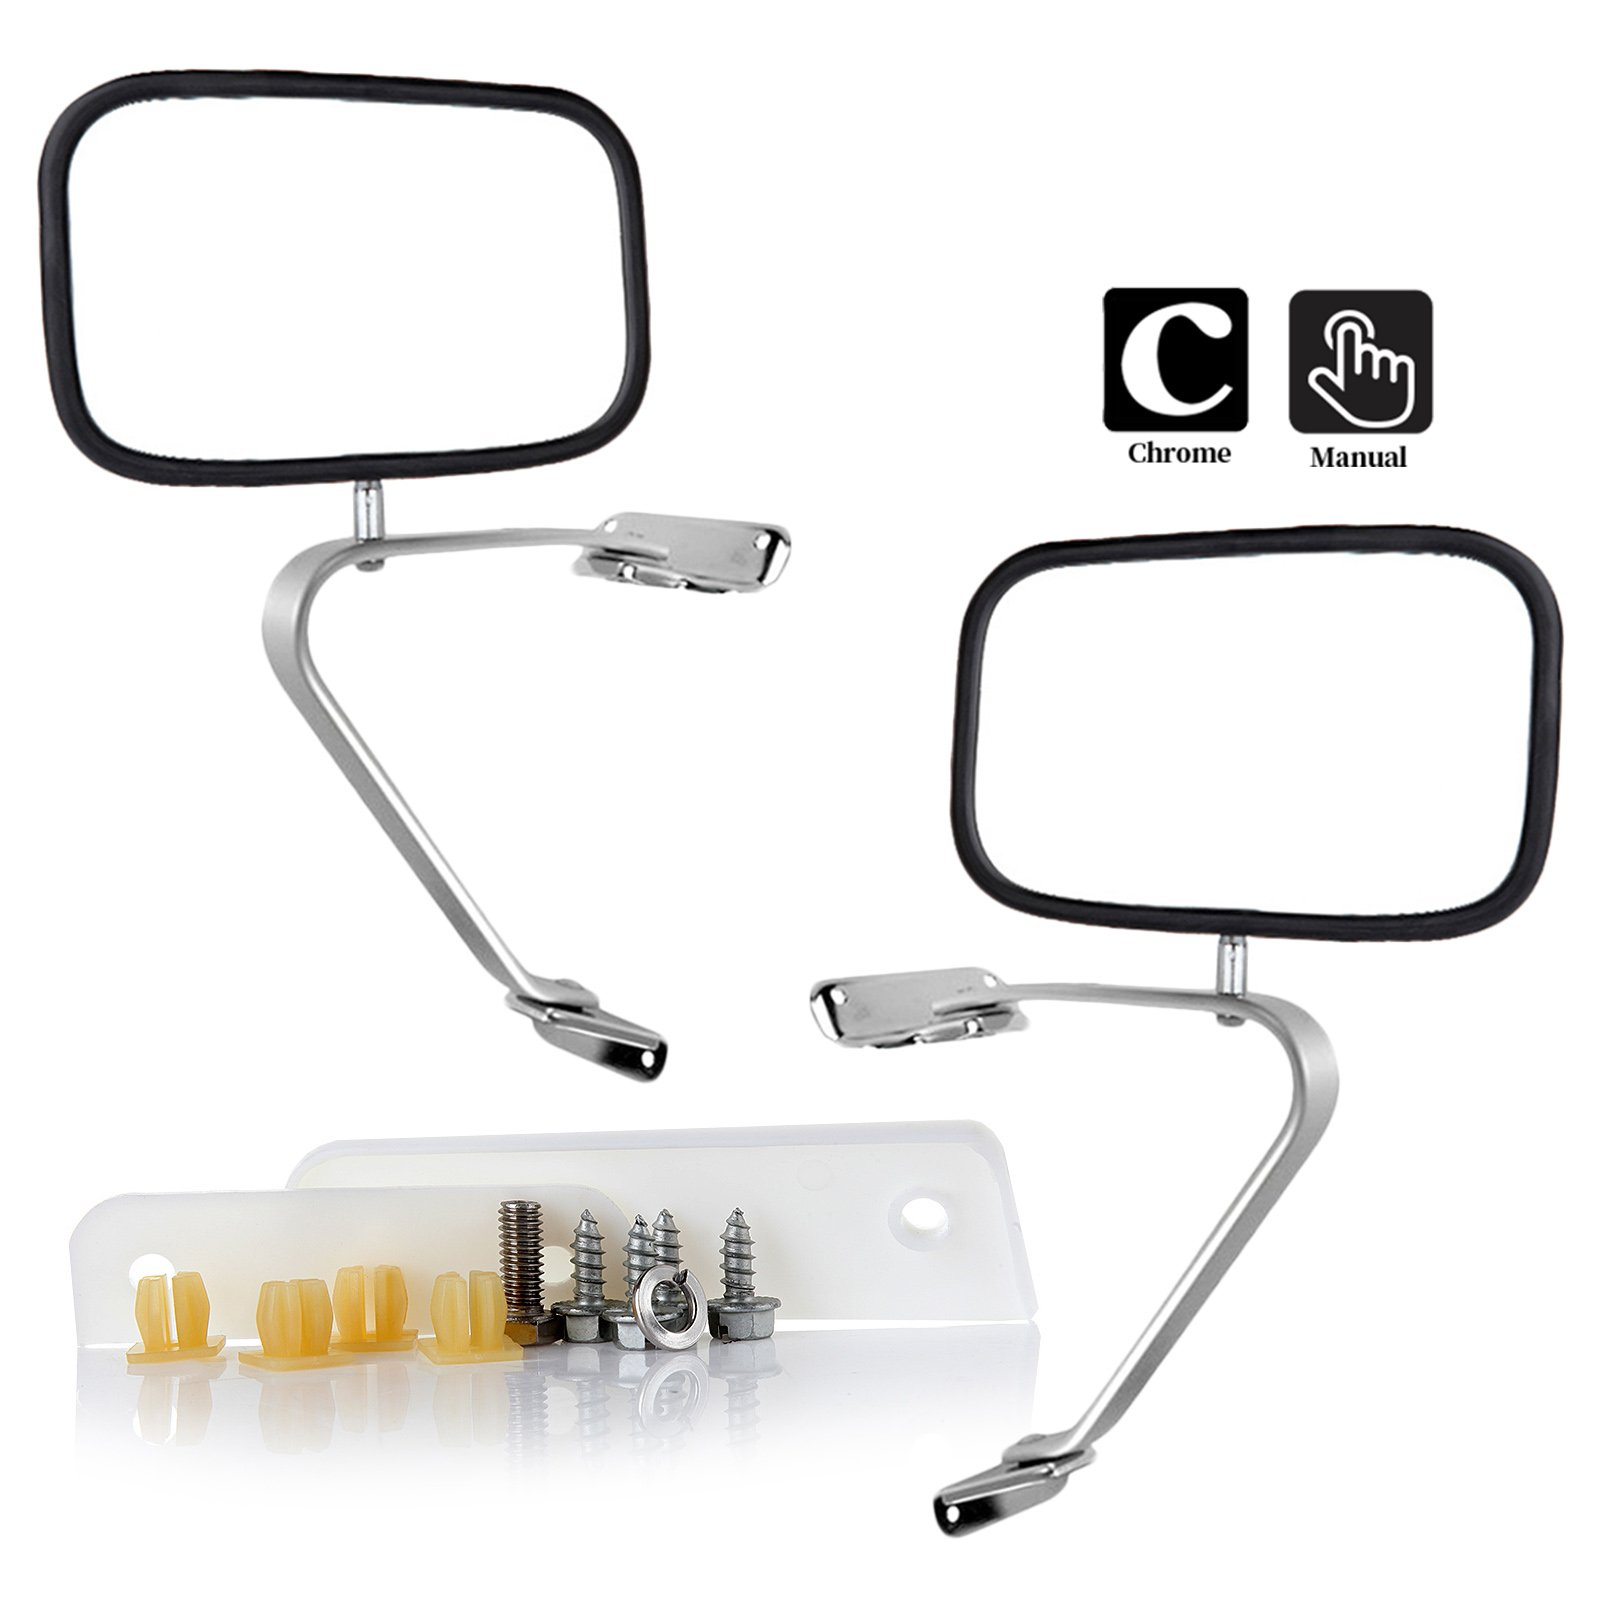 SCITOO Towing Mirrors Pair Chrome Side View Mirror by Replacement Mirror fit 80-96 Ford F150 F250 F350 F450 Ranger Bronco Explorer Truck Pickup